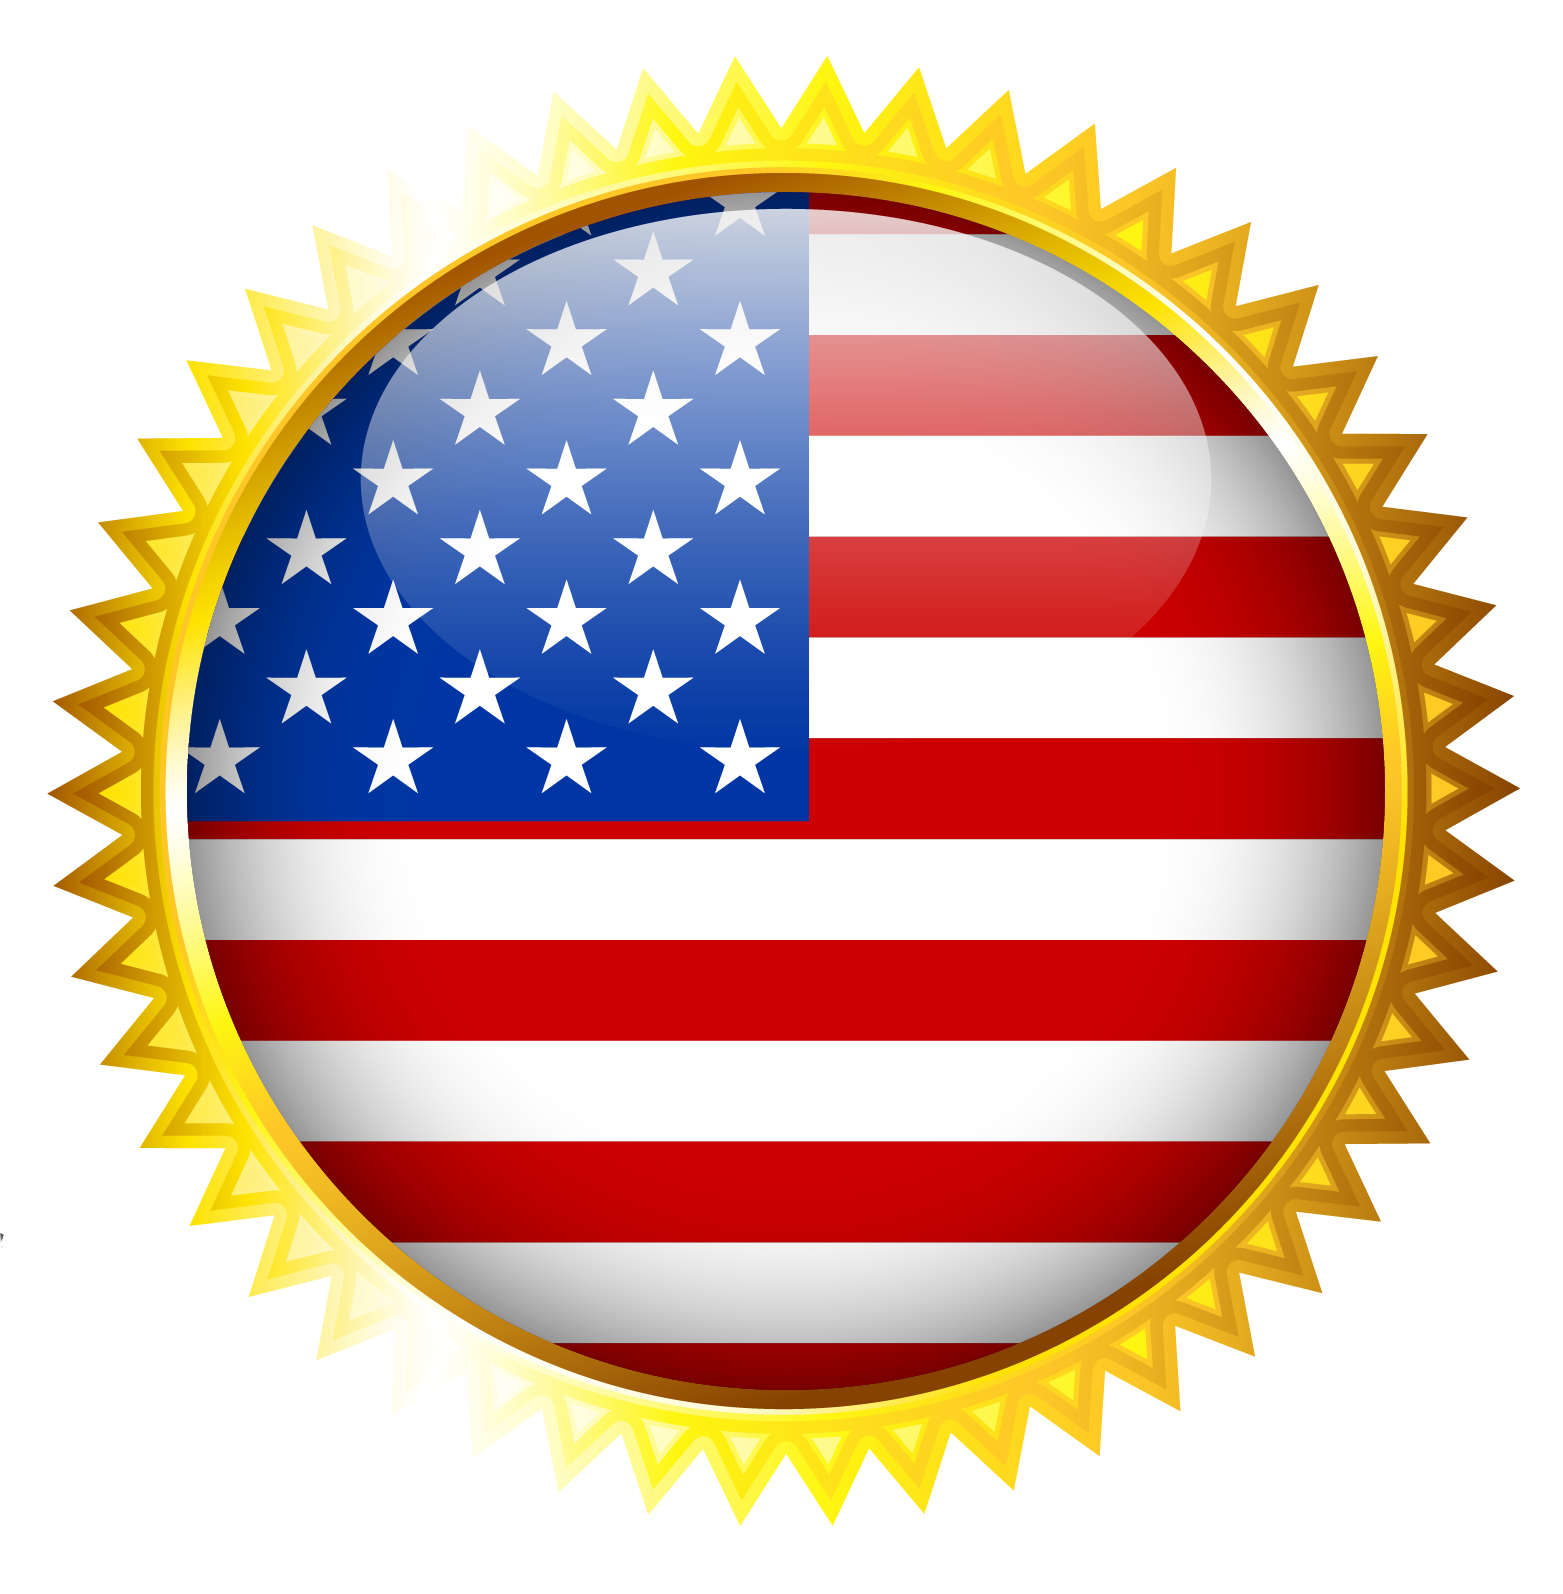 1563x1594 United States Flag Decoration Png Clipart Pictureu200b Gallery